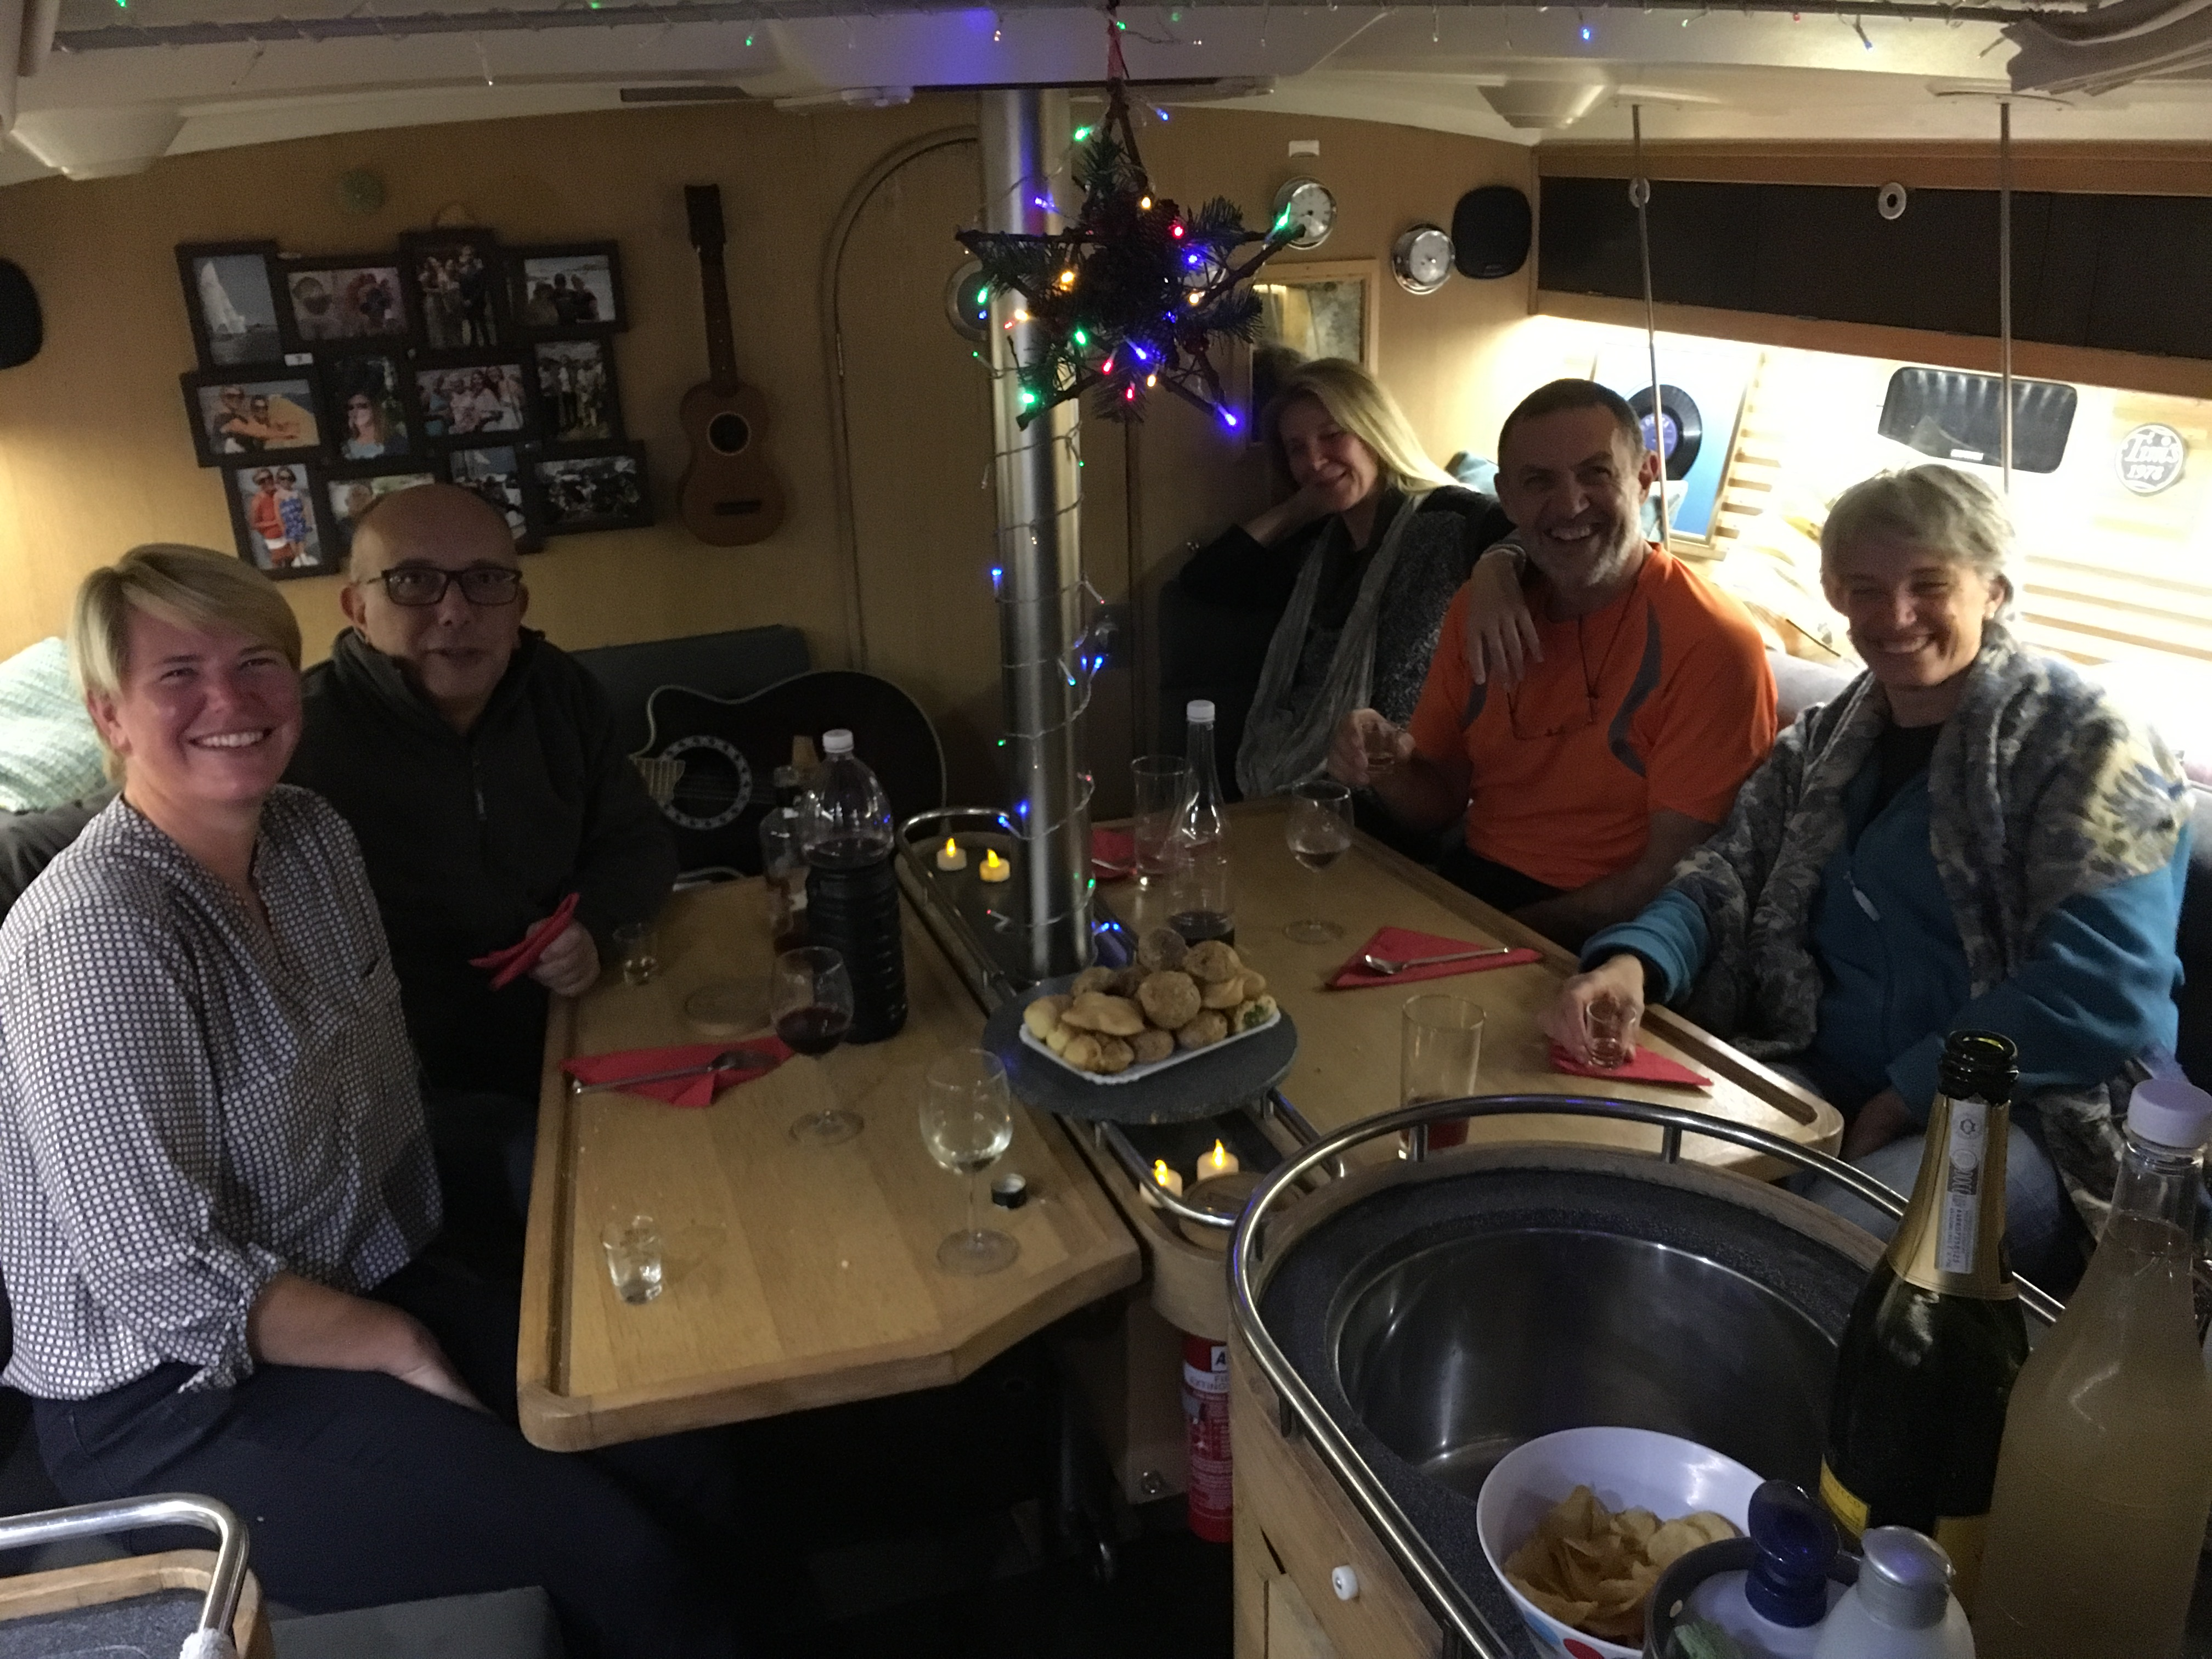 Friends on board Red Rooster